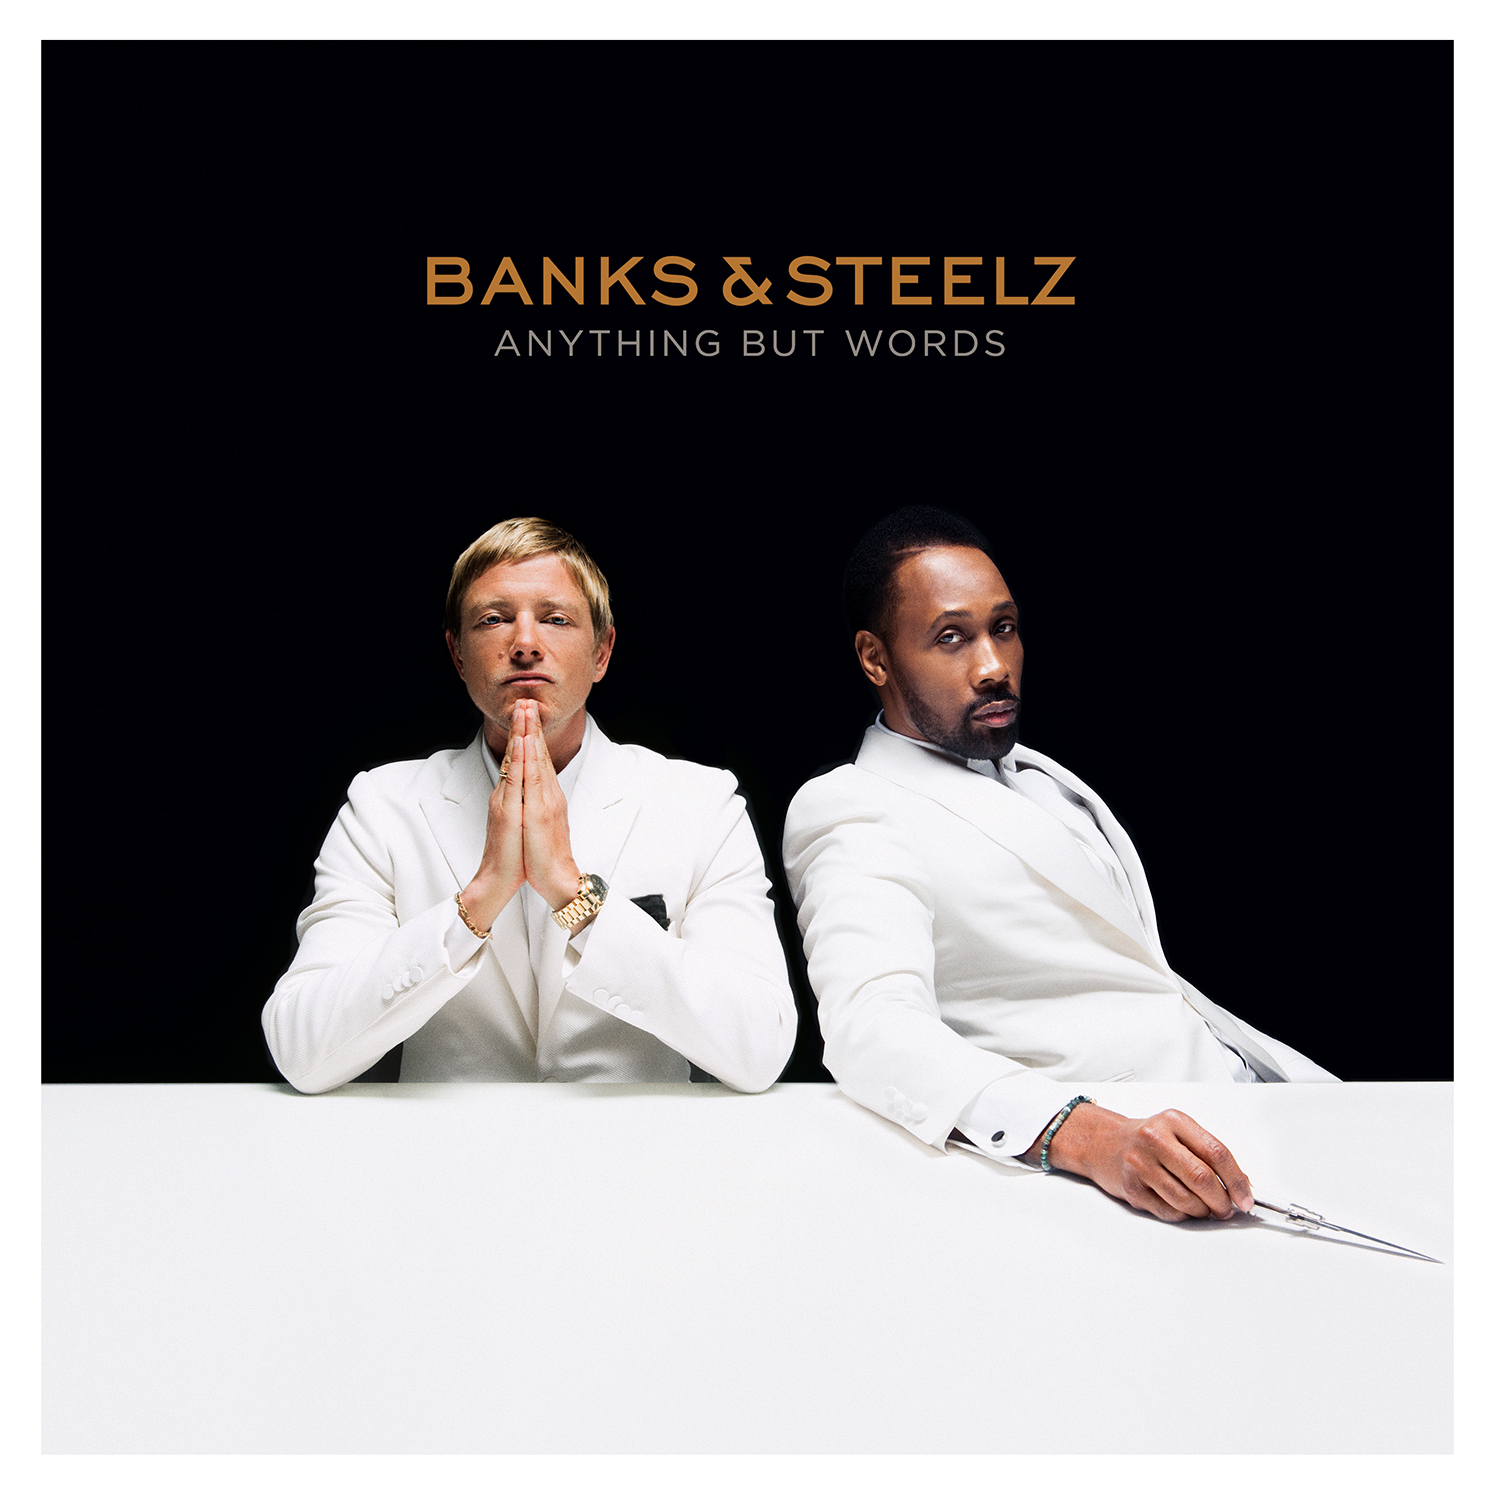 'Anything But Words' by Banks & Steelz, album review